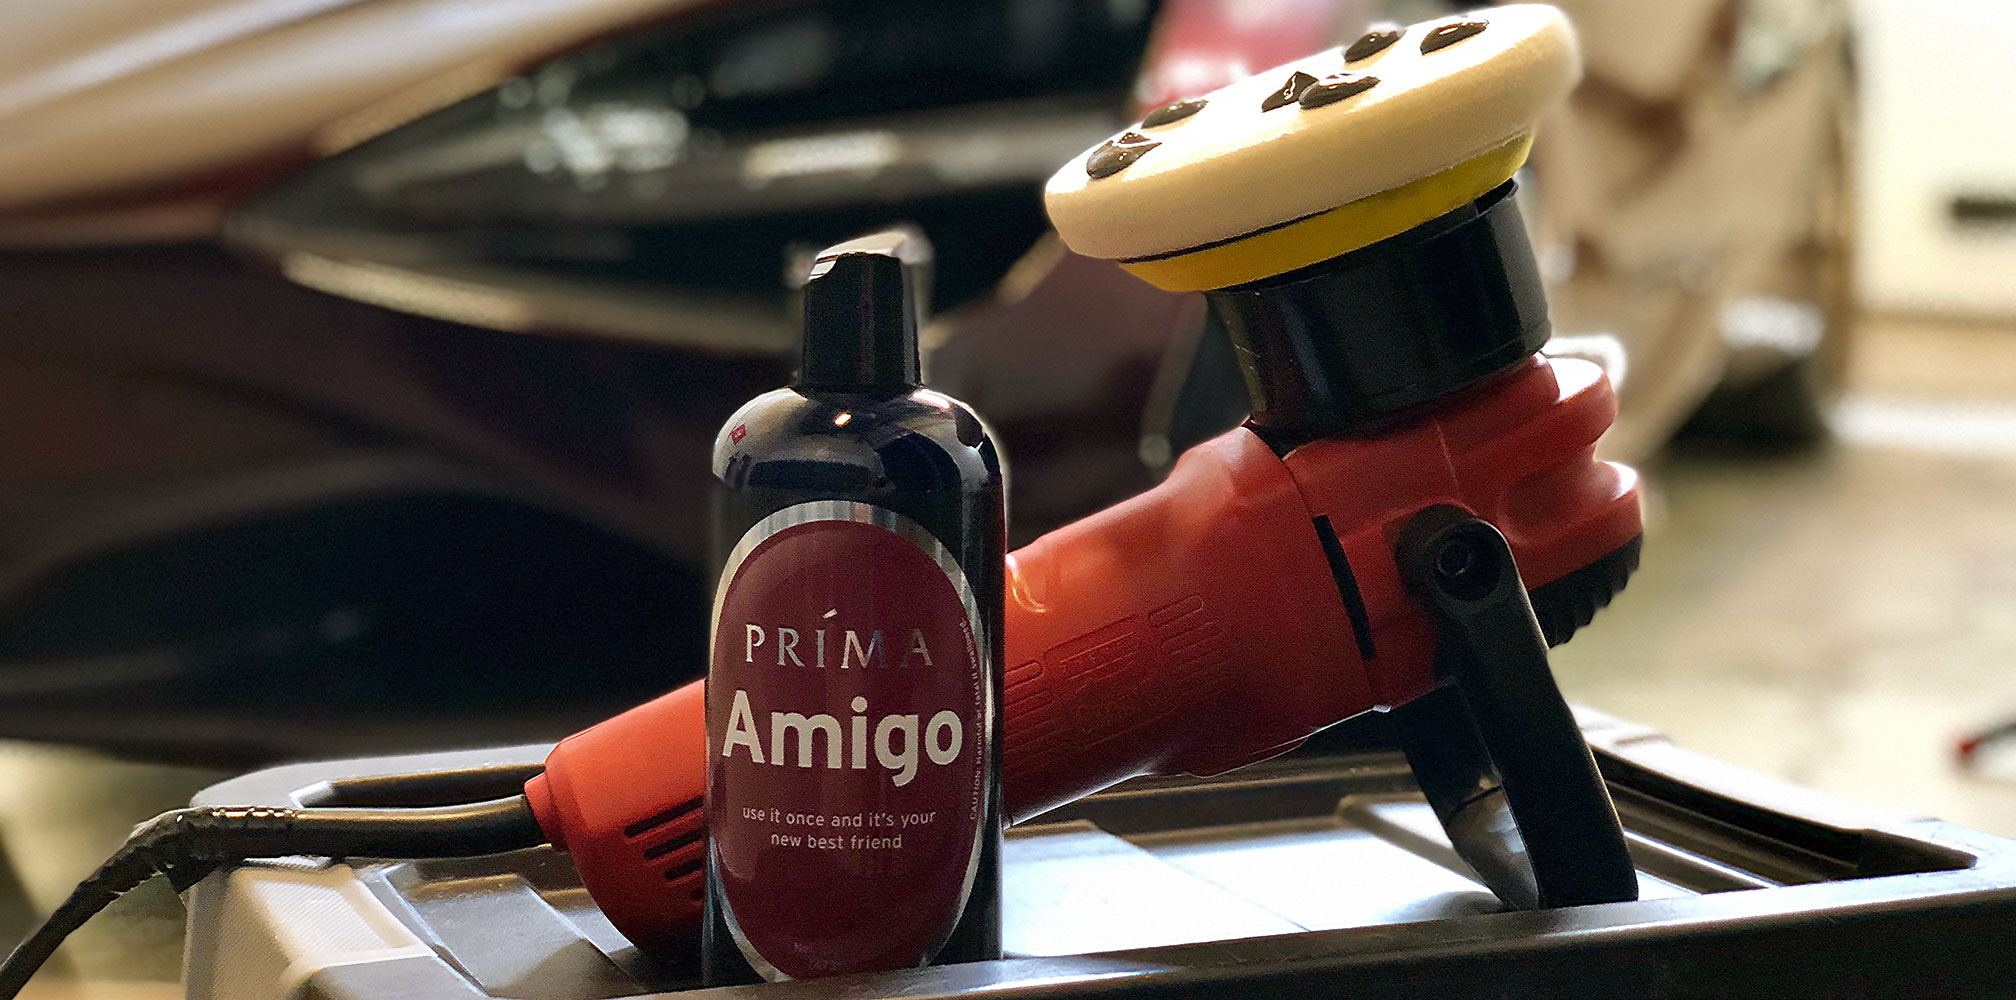 A bottle of Prima Amigo auto polish sits in front of a polisher